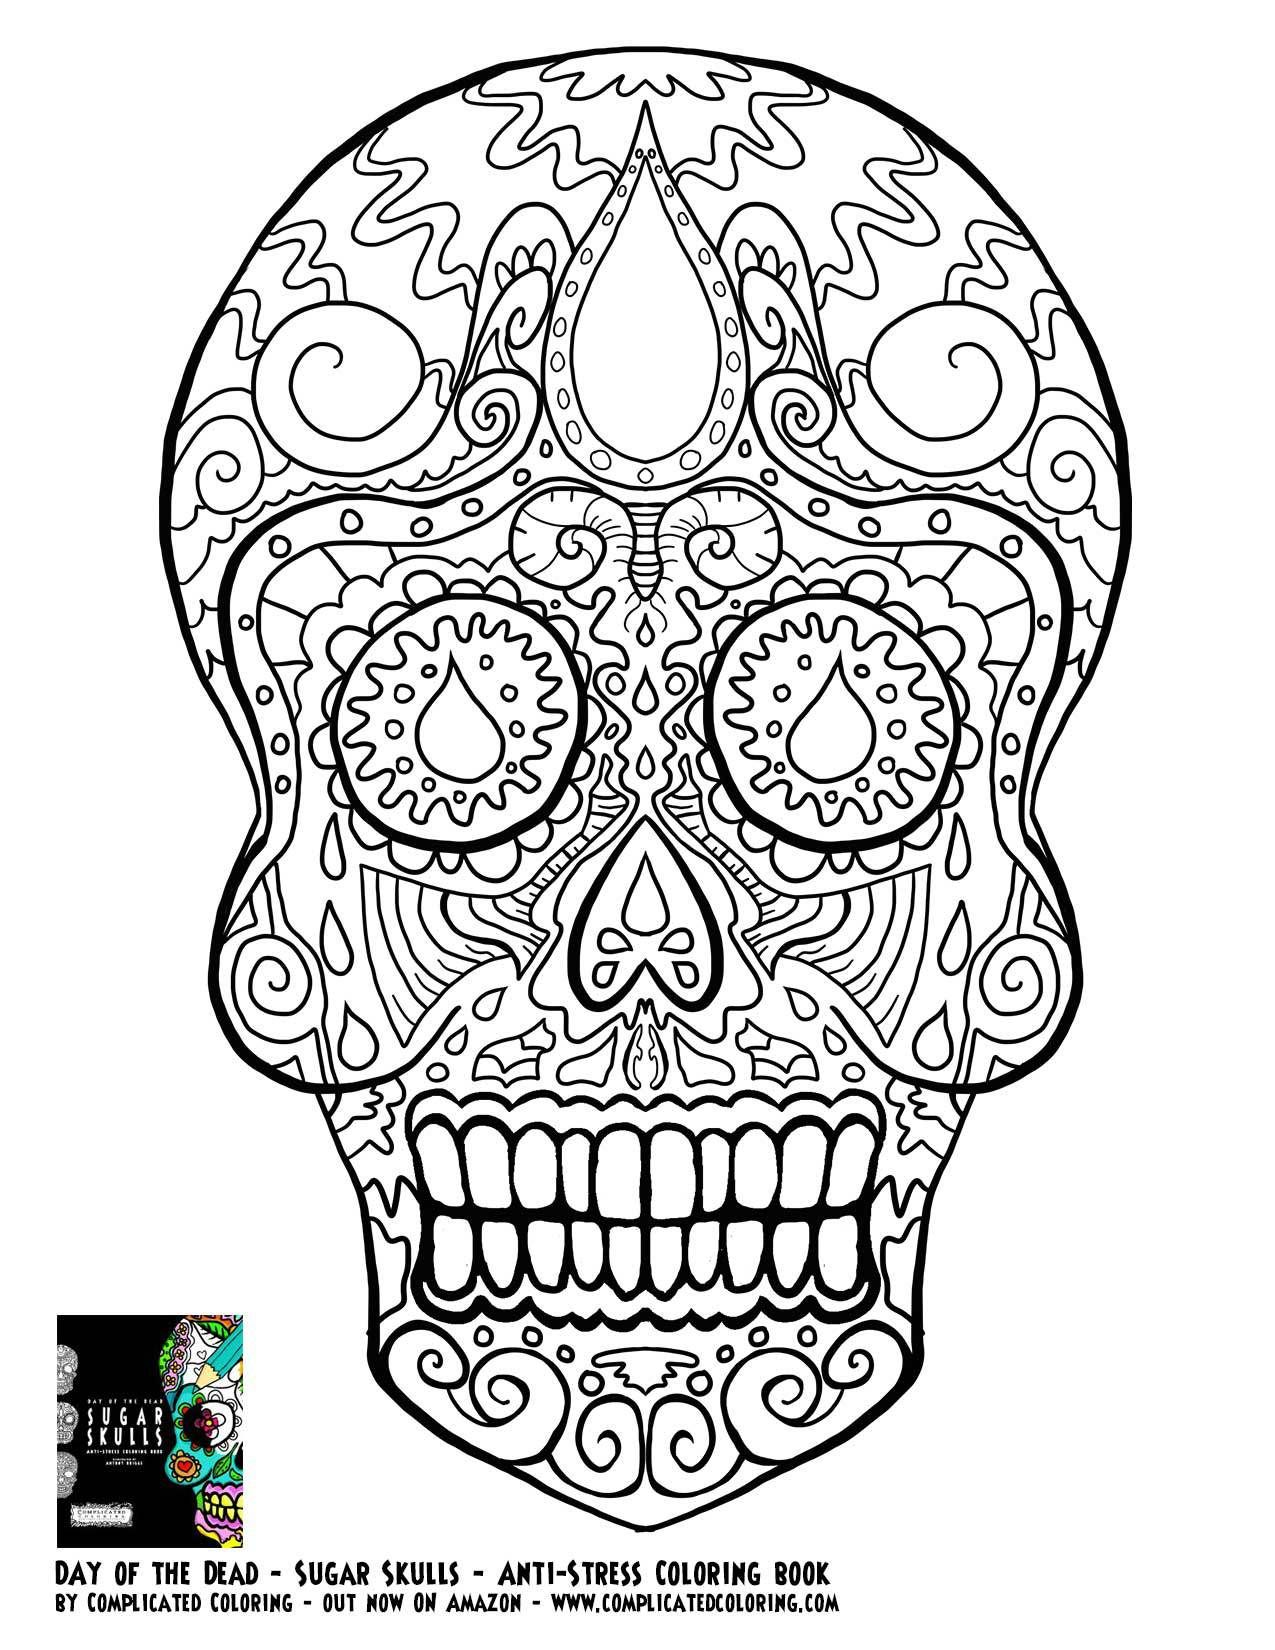 Free Coloring Pages Complicated Coloring Skull Coloring Pages Coloring Pages To Print Free Printable Coloring Pages